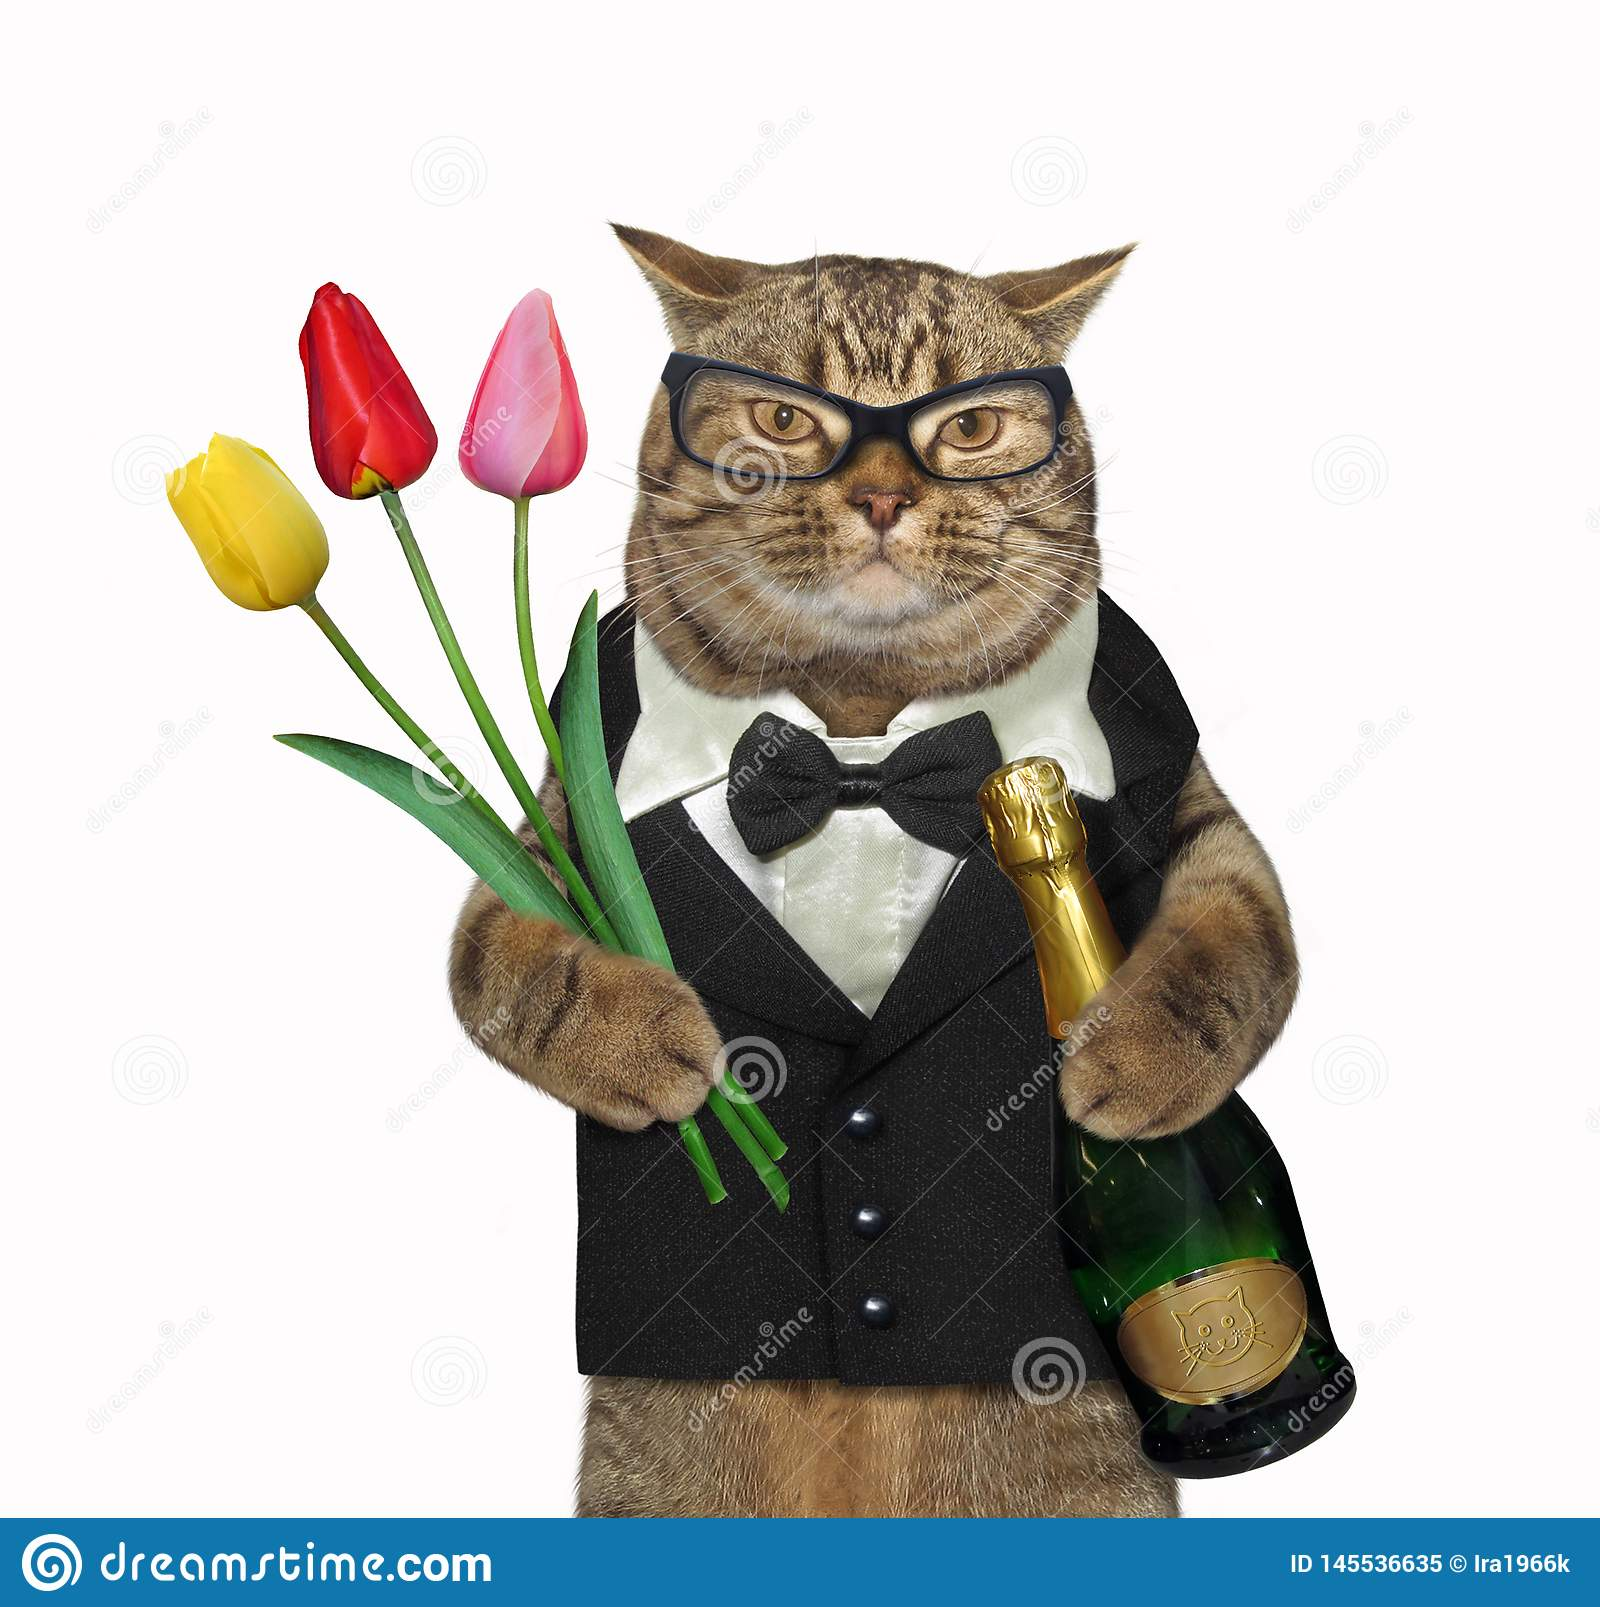 Cat in a suit holds wine and tulips